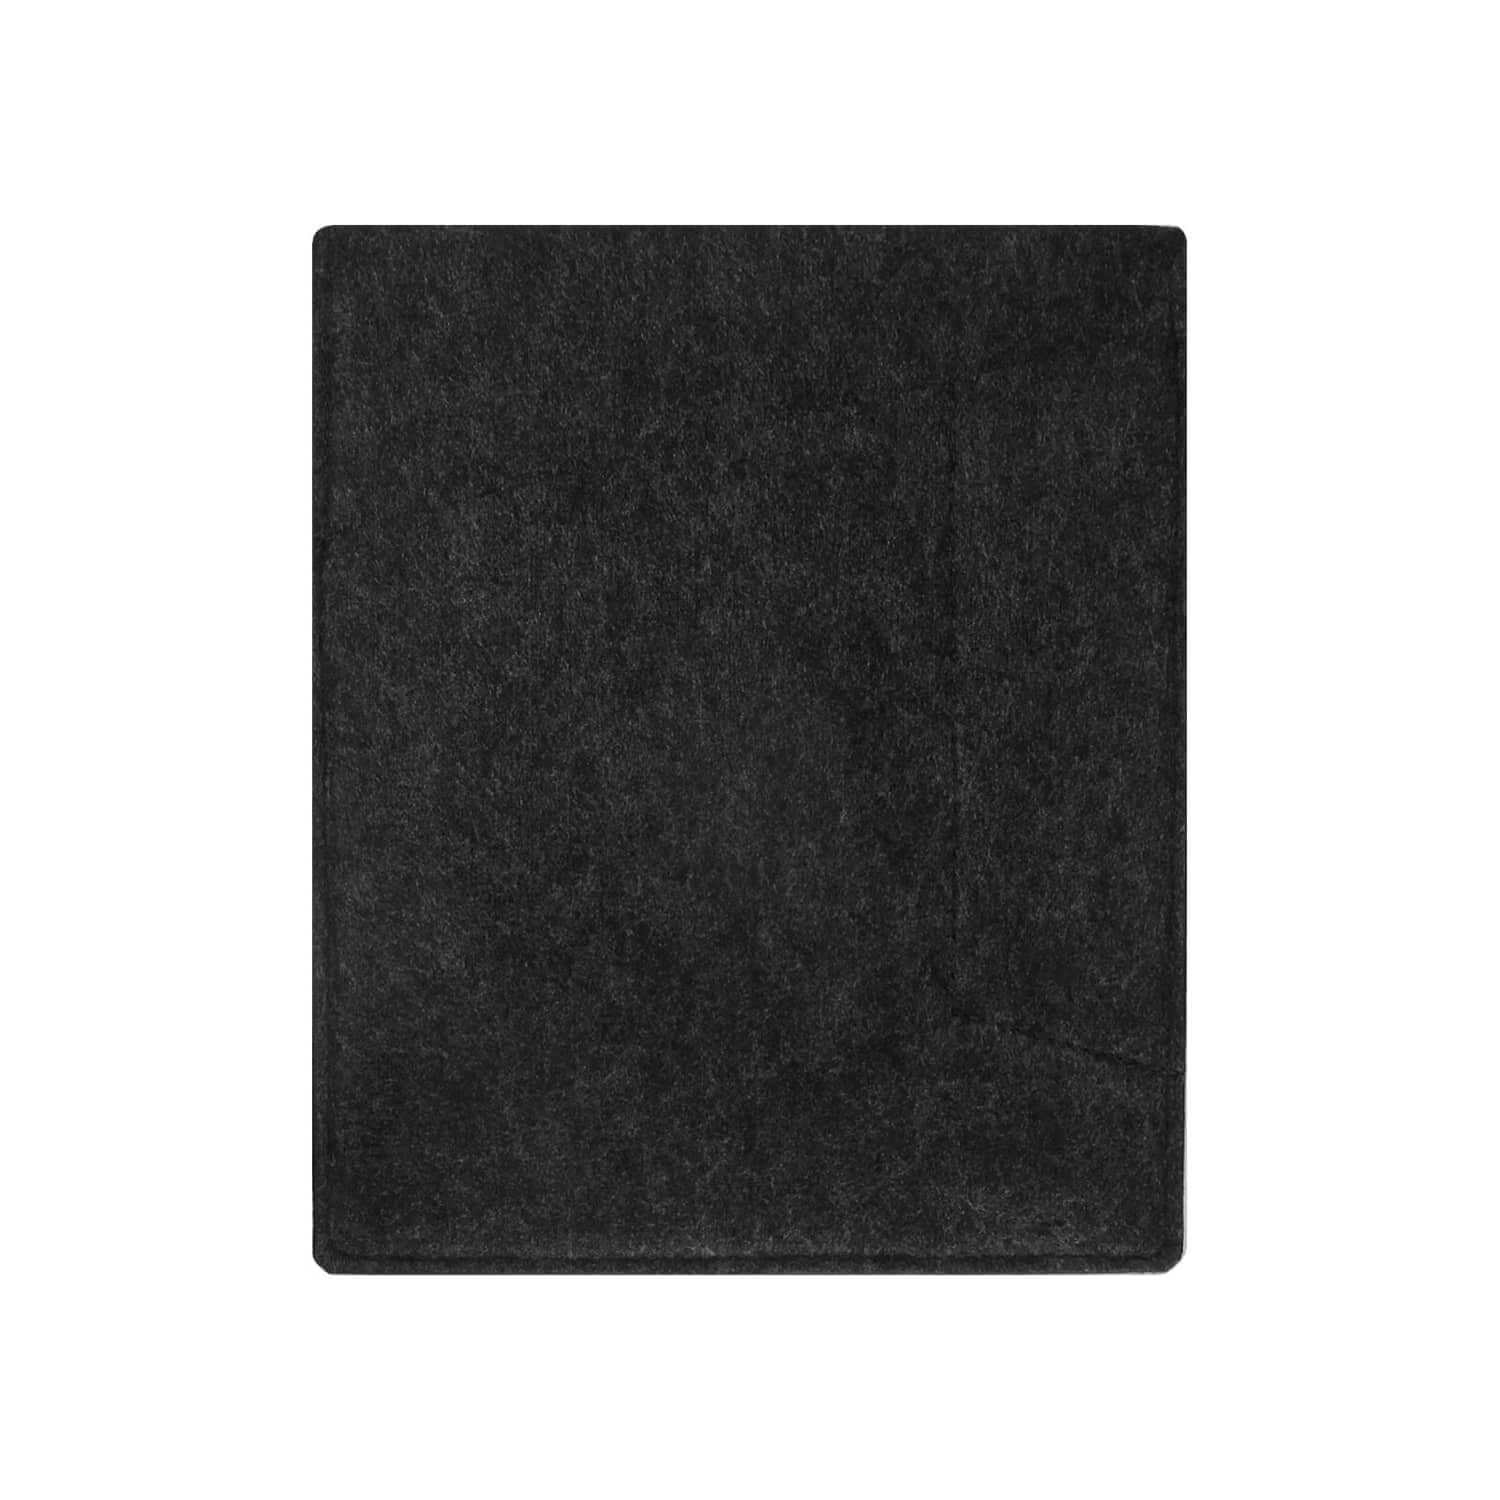 Felt case tablet 9.7 - business darkgrey 2